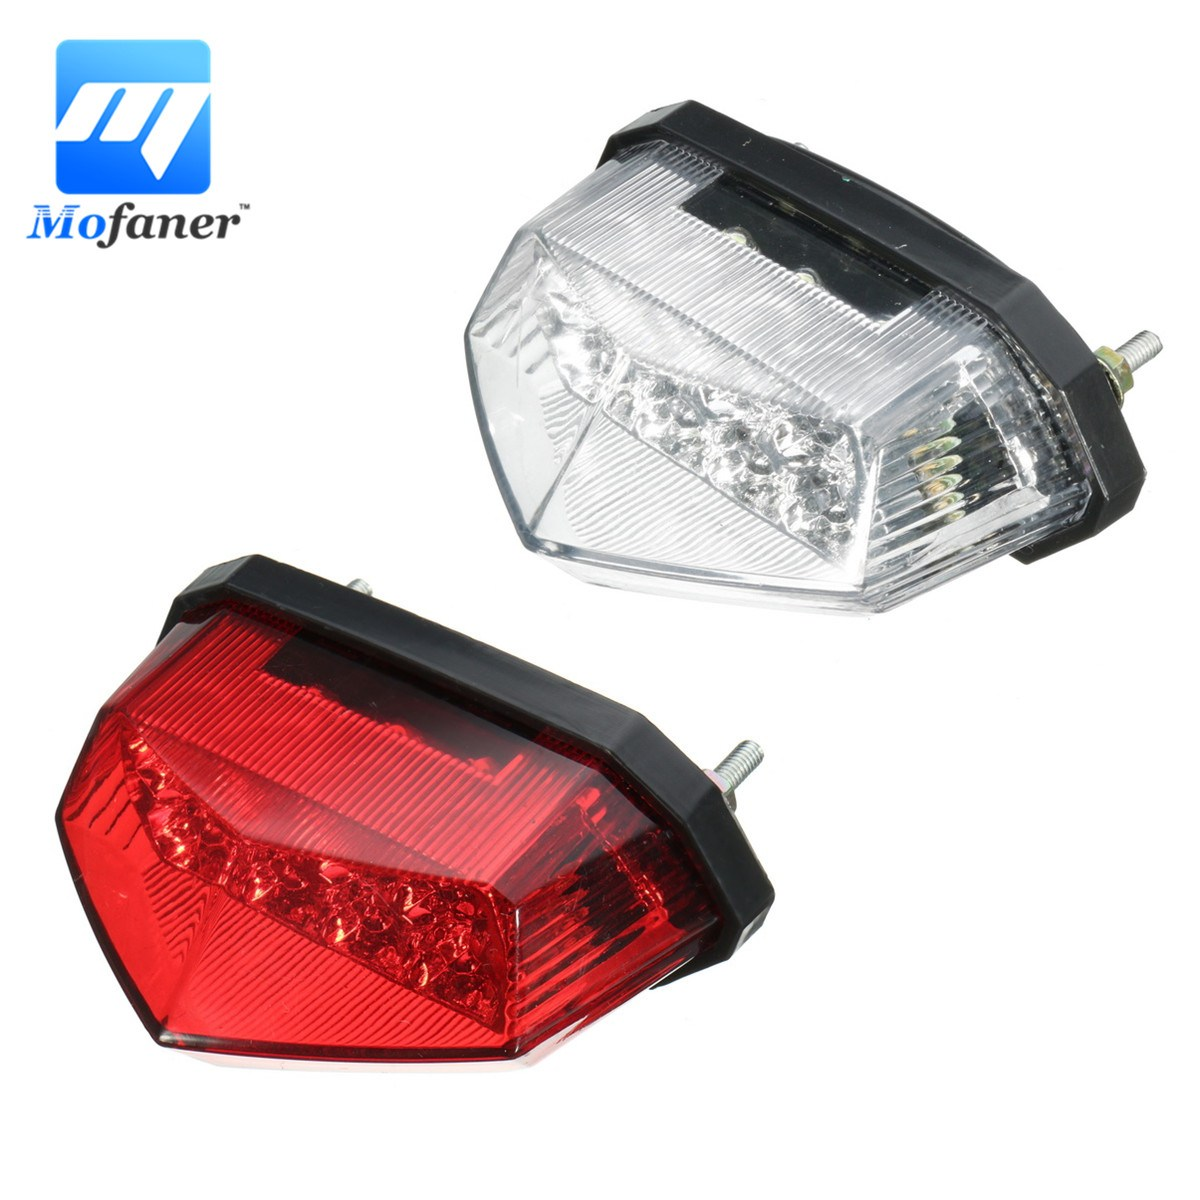 Mofaner Motorcycle ATV Tail Light 11 LEDs Motorbike License Plate Rear Tail Light Stop Brake Lamp